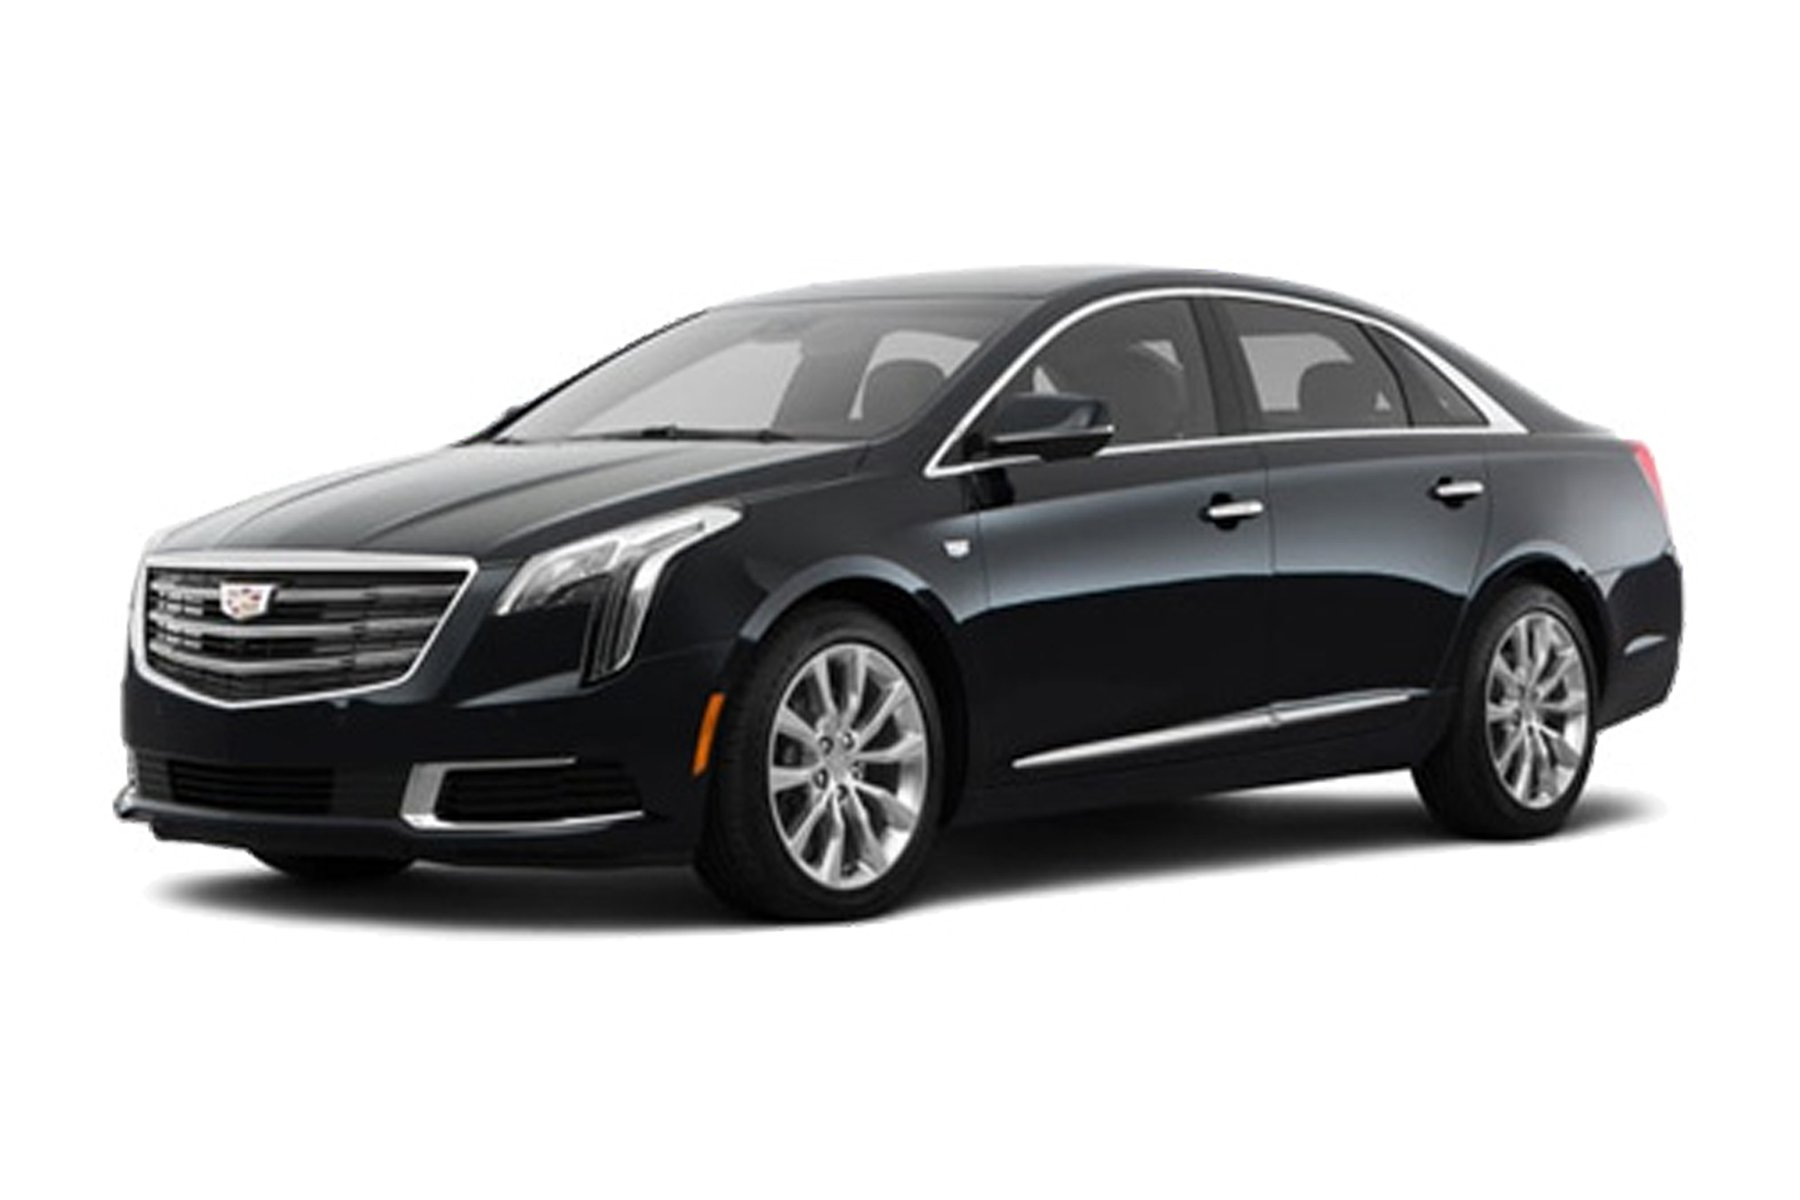 Skyline Chicago Limo Cars Luxury Fleet Black Cadillac XTS Exterior October 2020